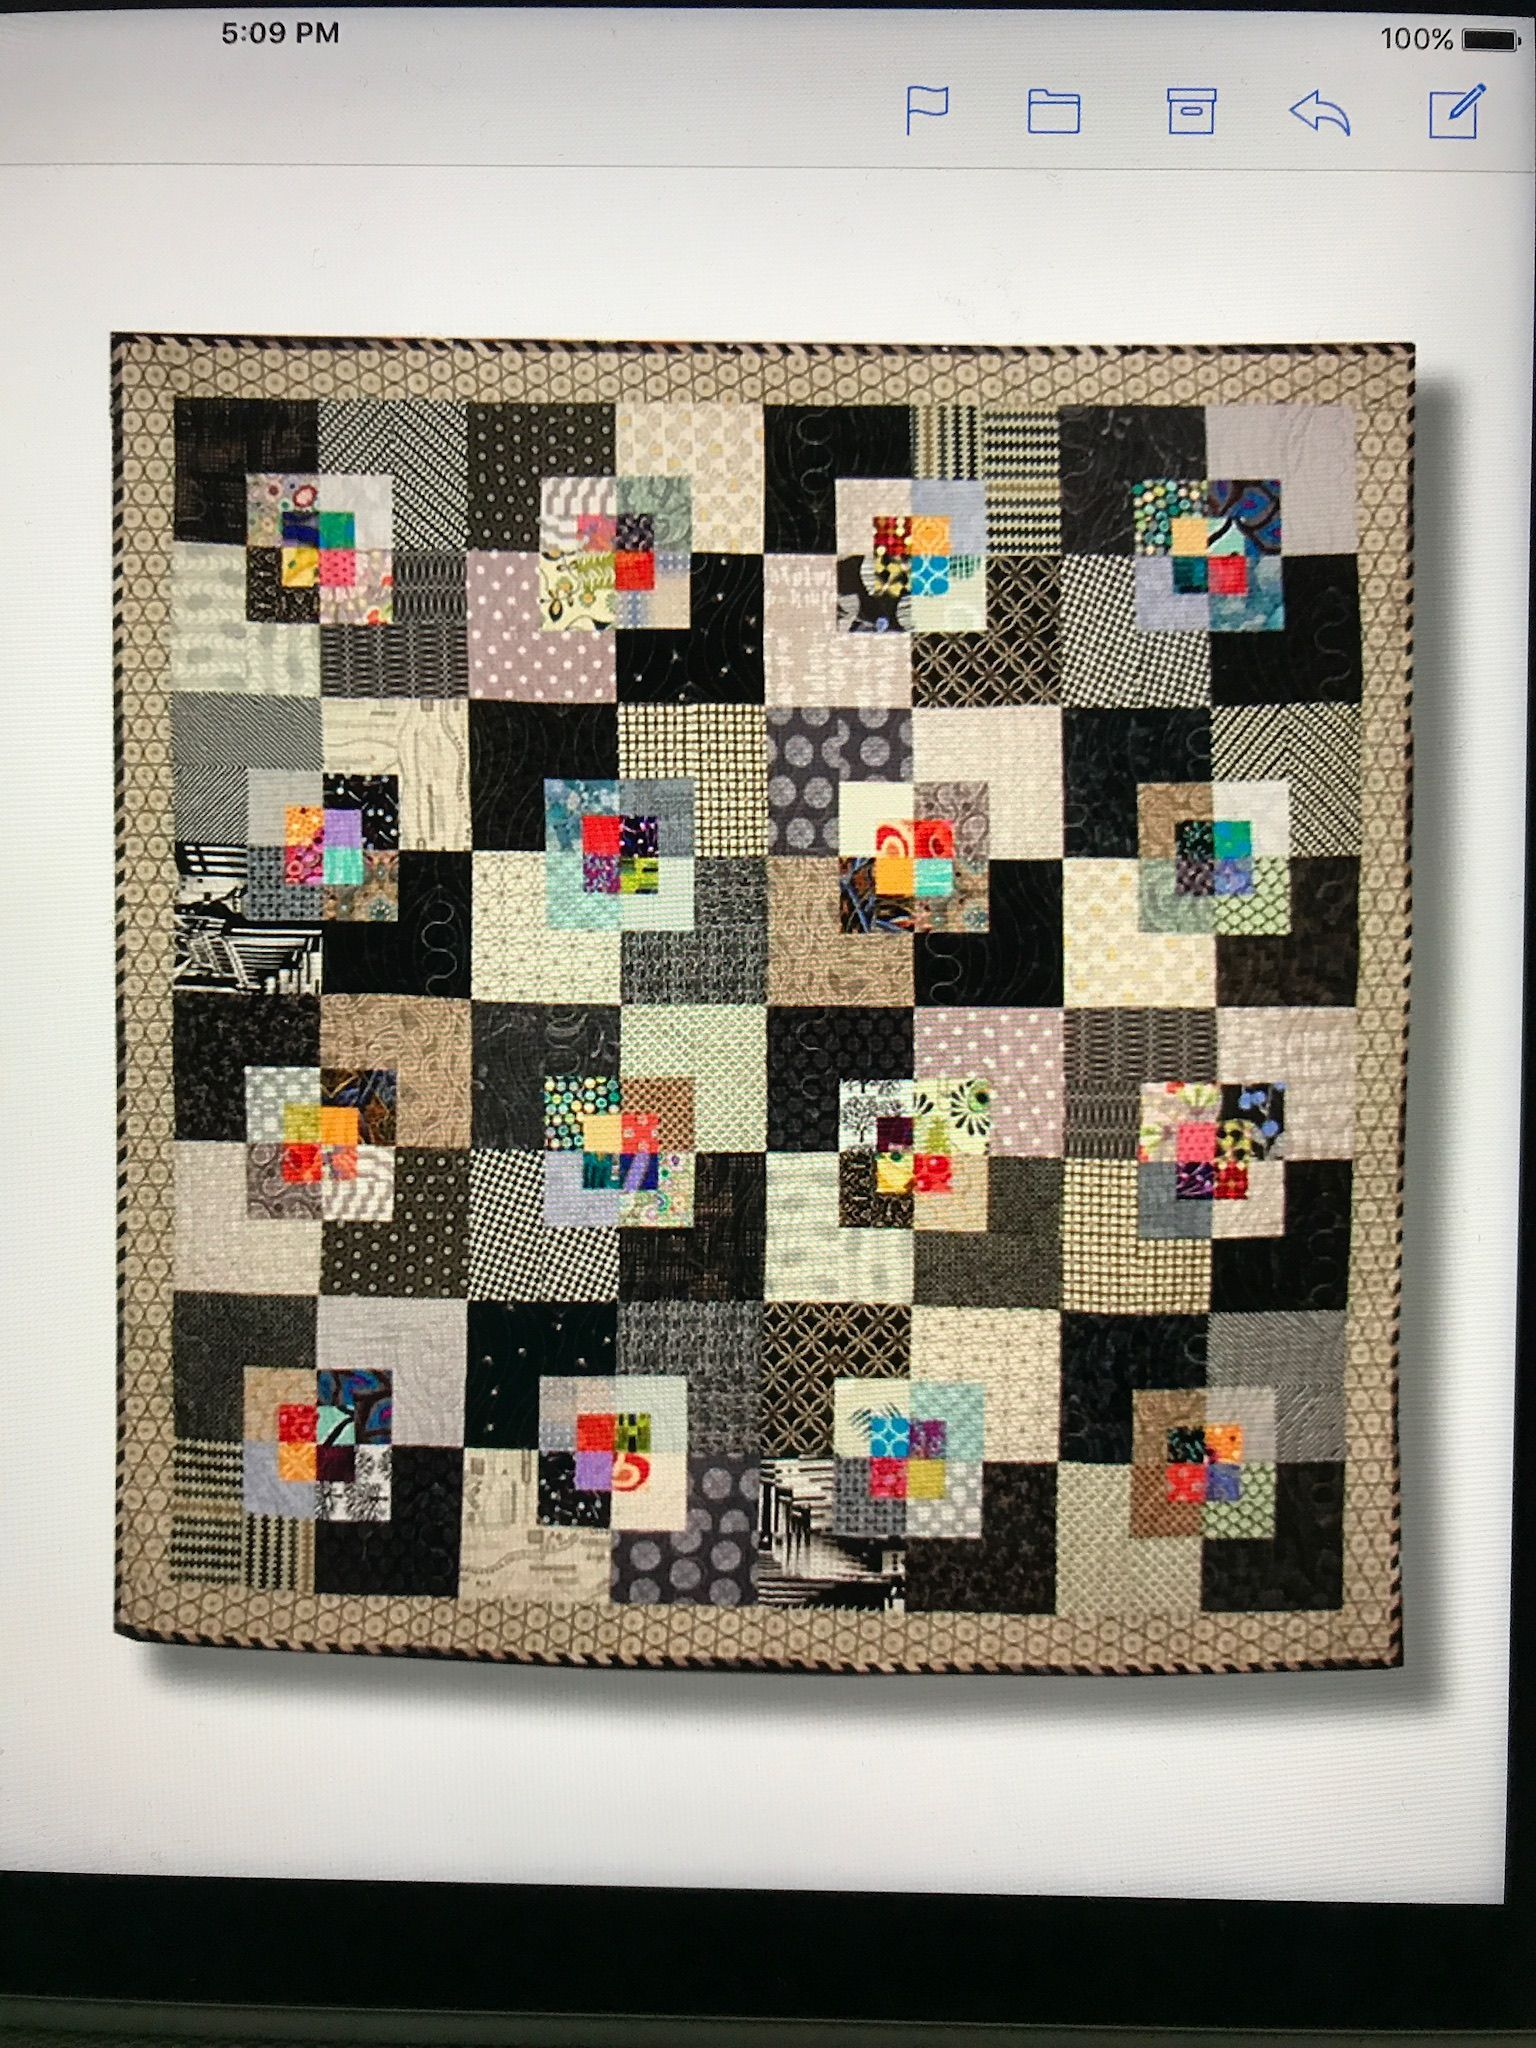 Pin By Carol Forde On Scrap Quilts Pinterest Patchwork Scrap